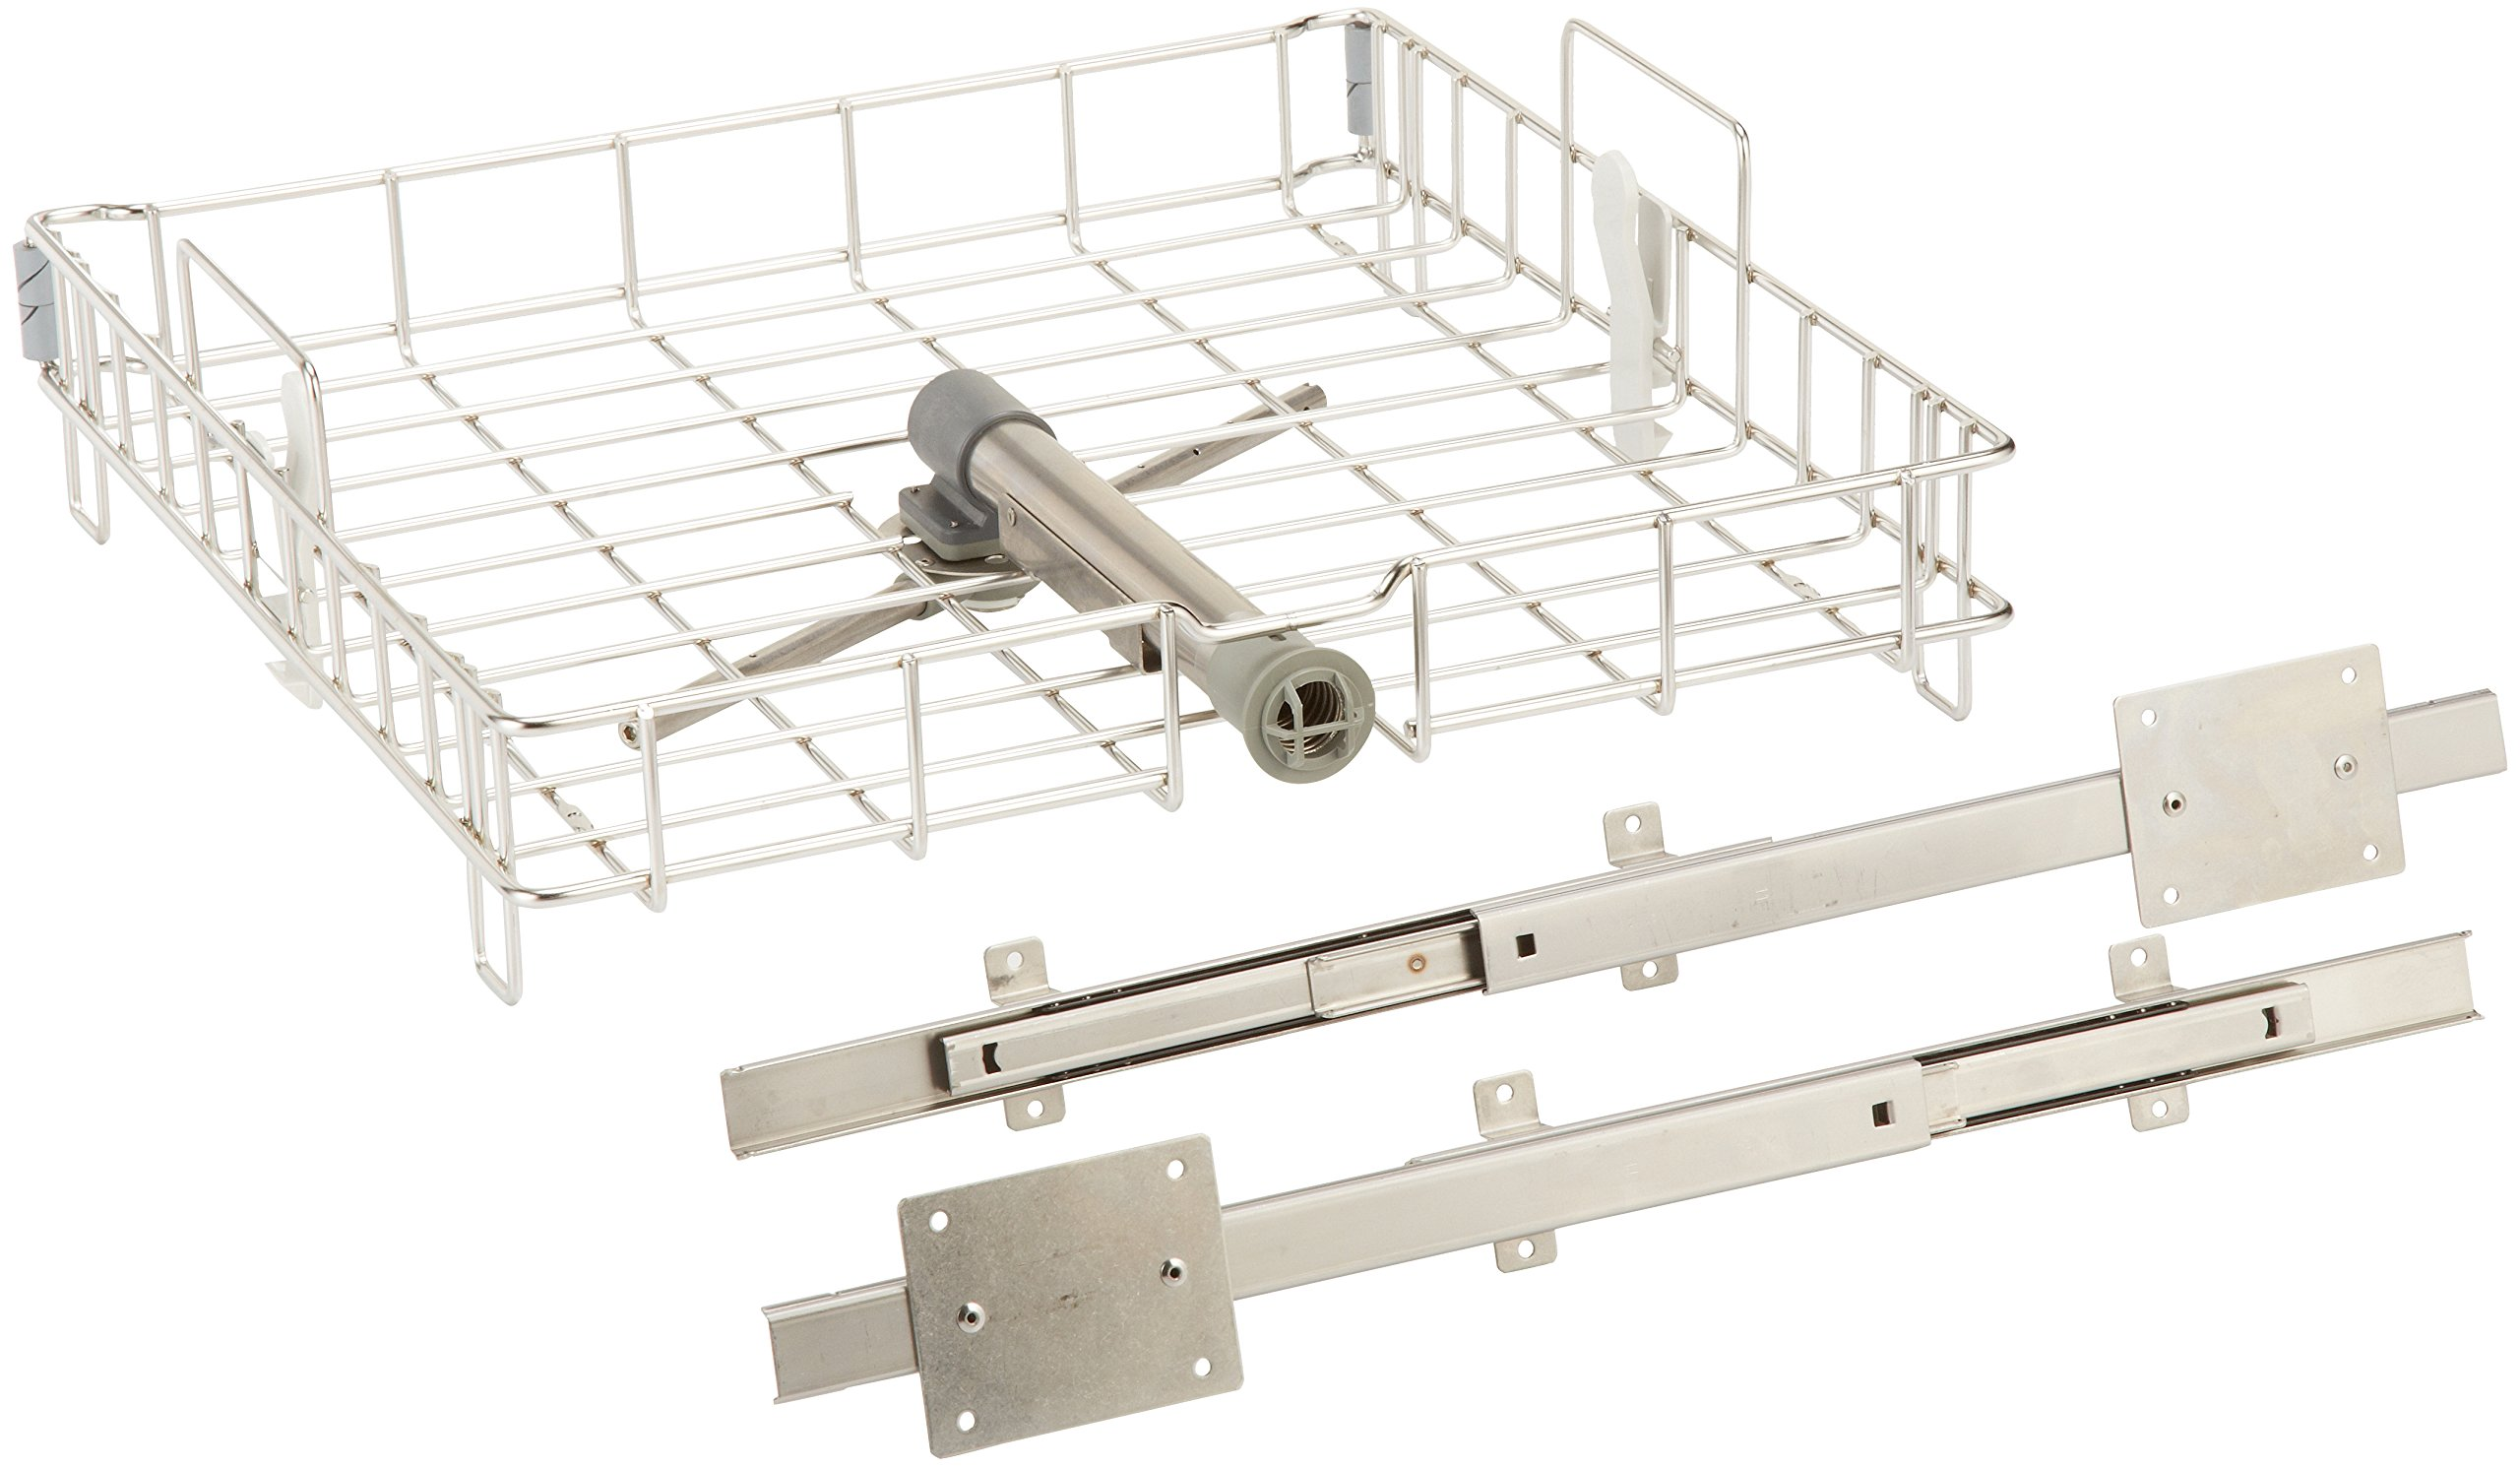 Labconco 4595900 Stainless Steel FlaskScrubber Upper Standard Rack, 20.2'' W x 20.9'' D x 6.0'' H by Labconco